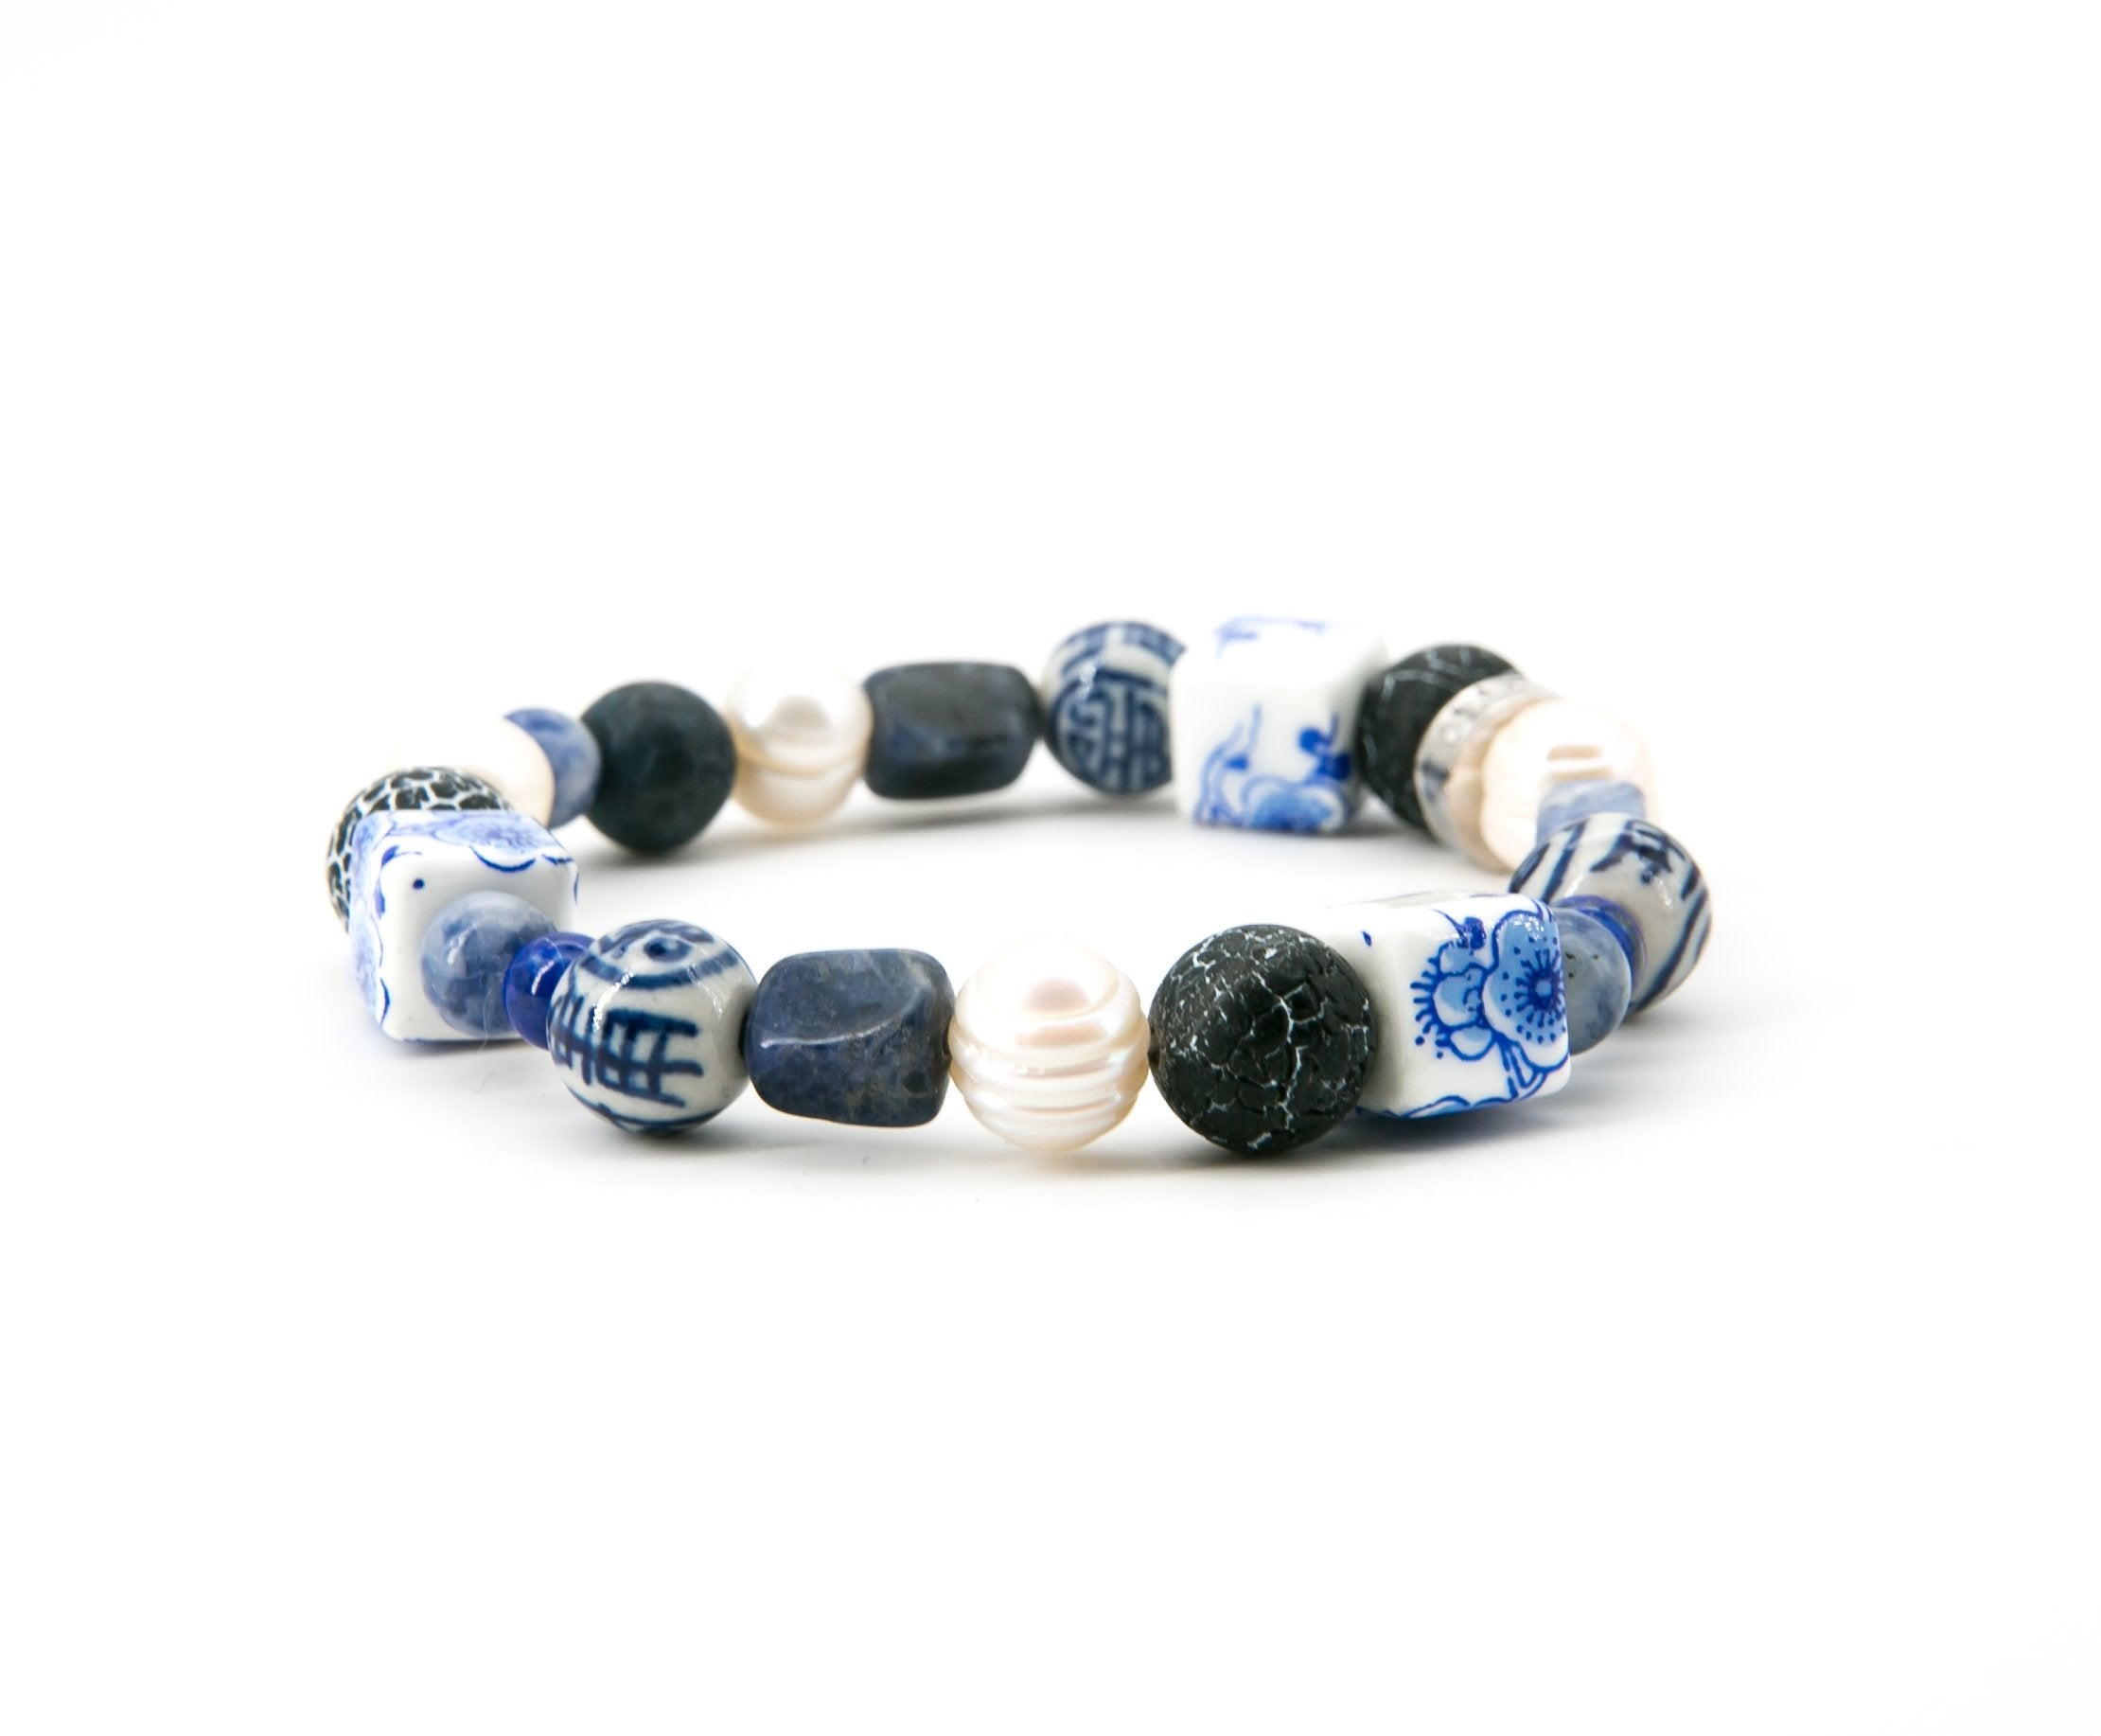 China Blue Ceramic Bracelet | Stones that Rock